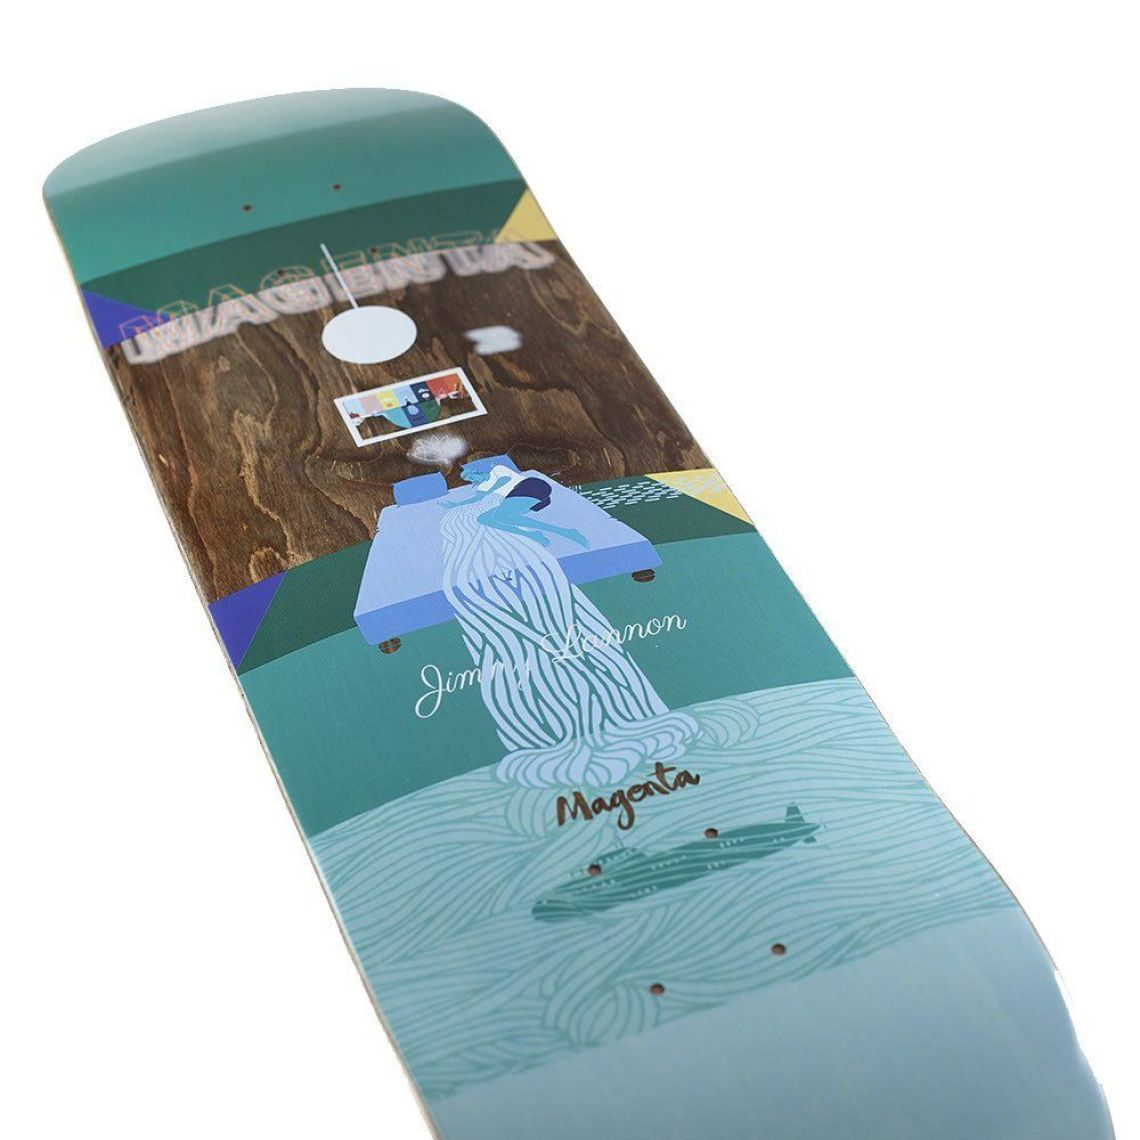 Sleep Board Series By Soy Panday For Magenta Skateboards 4